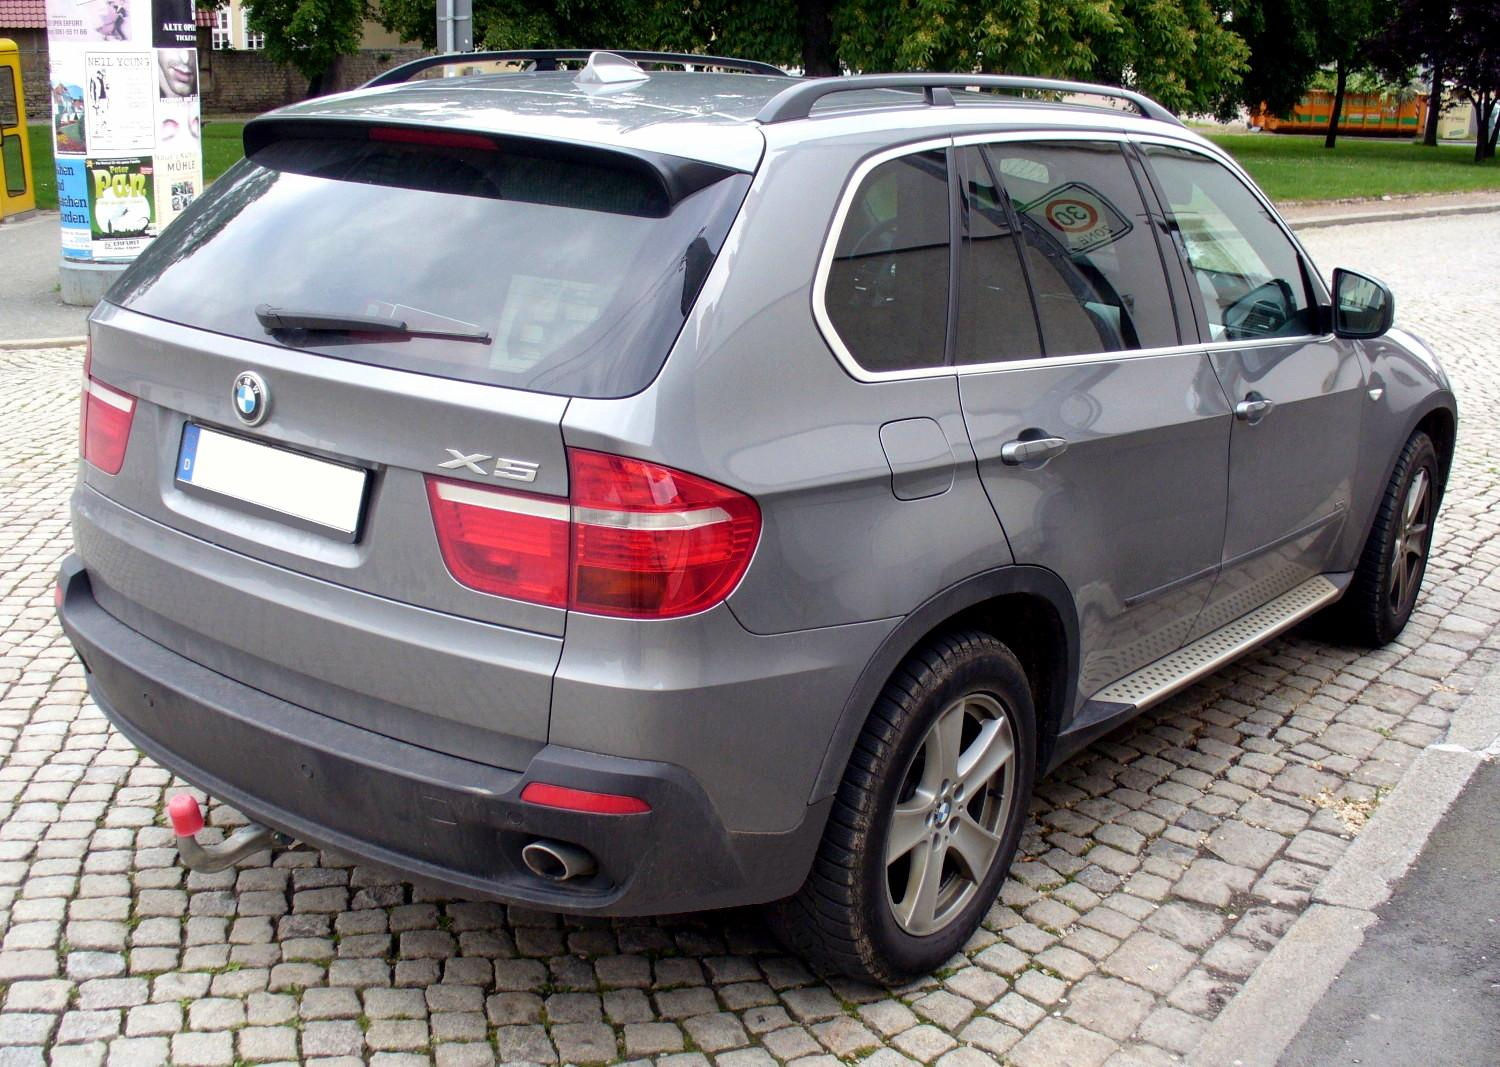 File Bmw E70 X5 3 0d Spacegrau Heck Jpg Wikimedia Commons